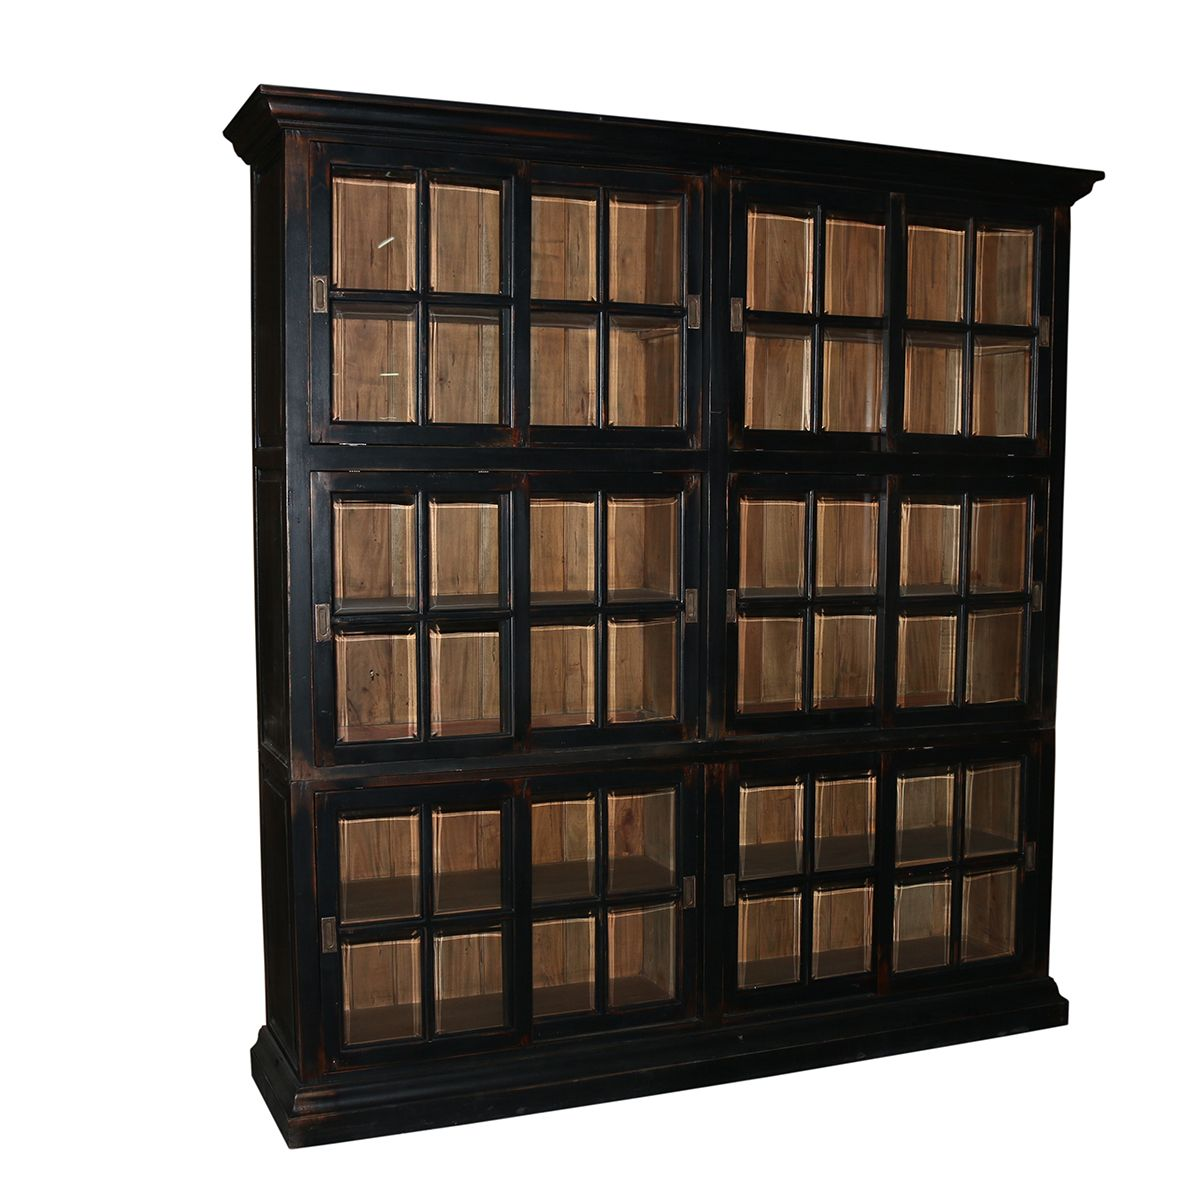 The Display Cabinet With Beveled Glass And Sliding Doors Can Be Used